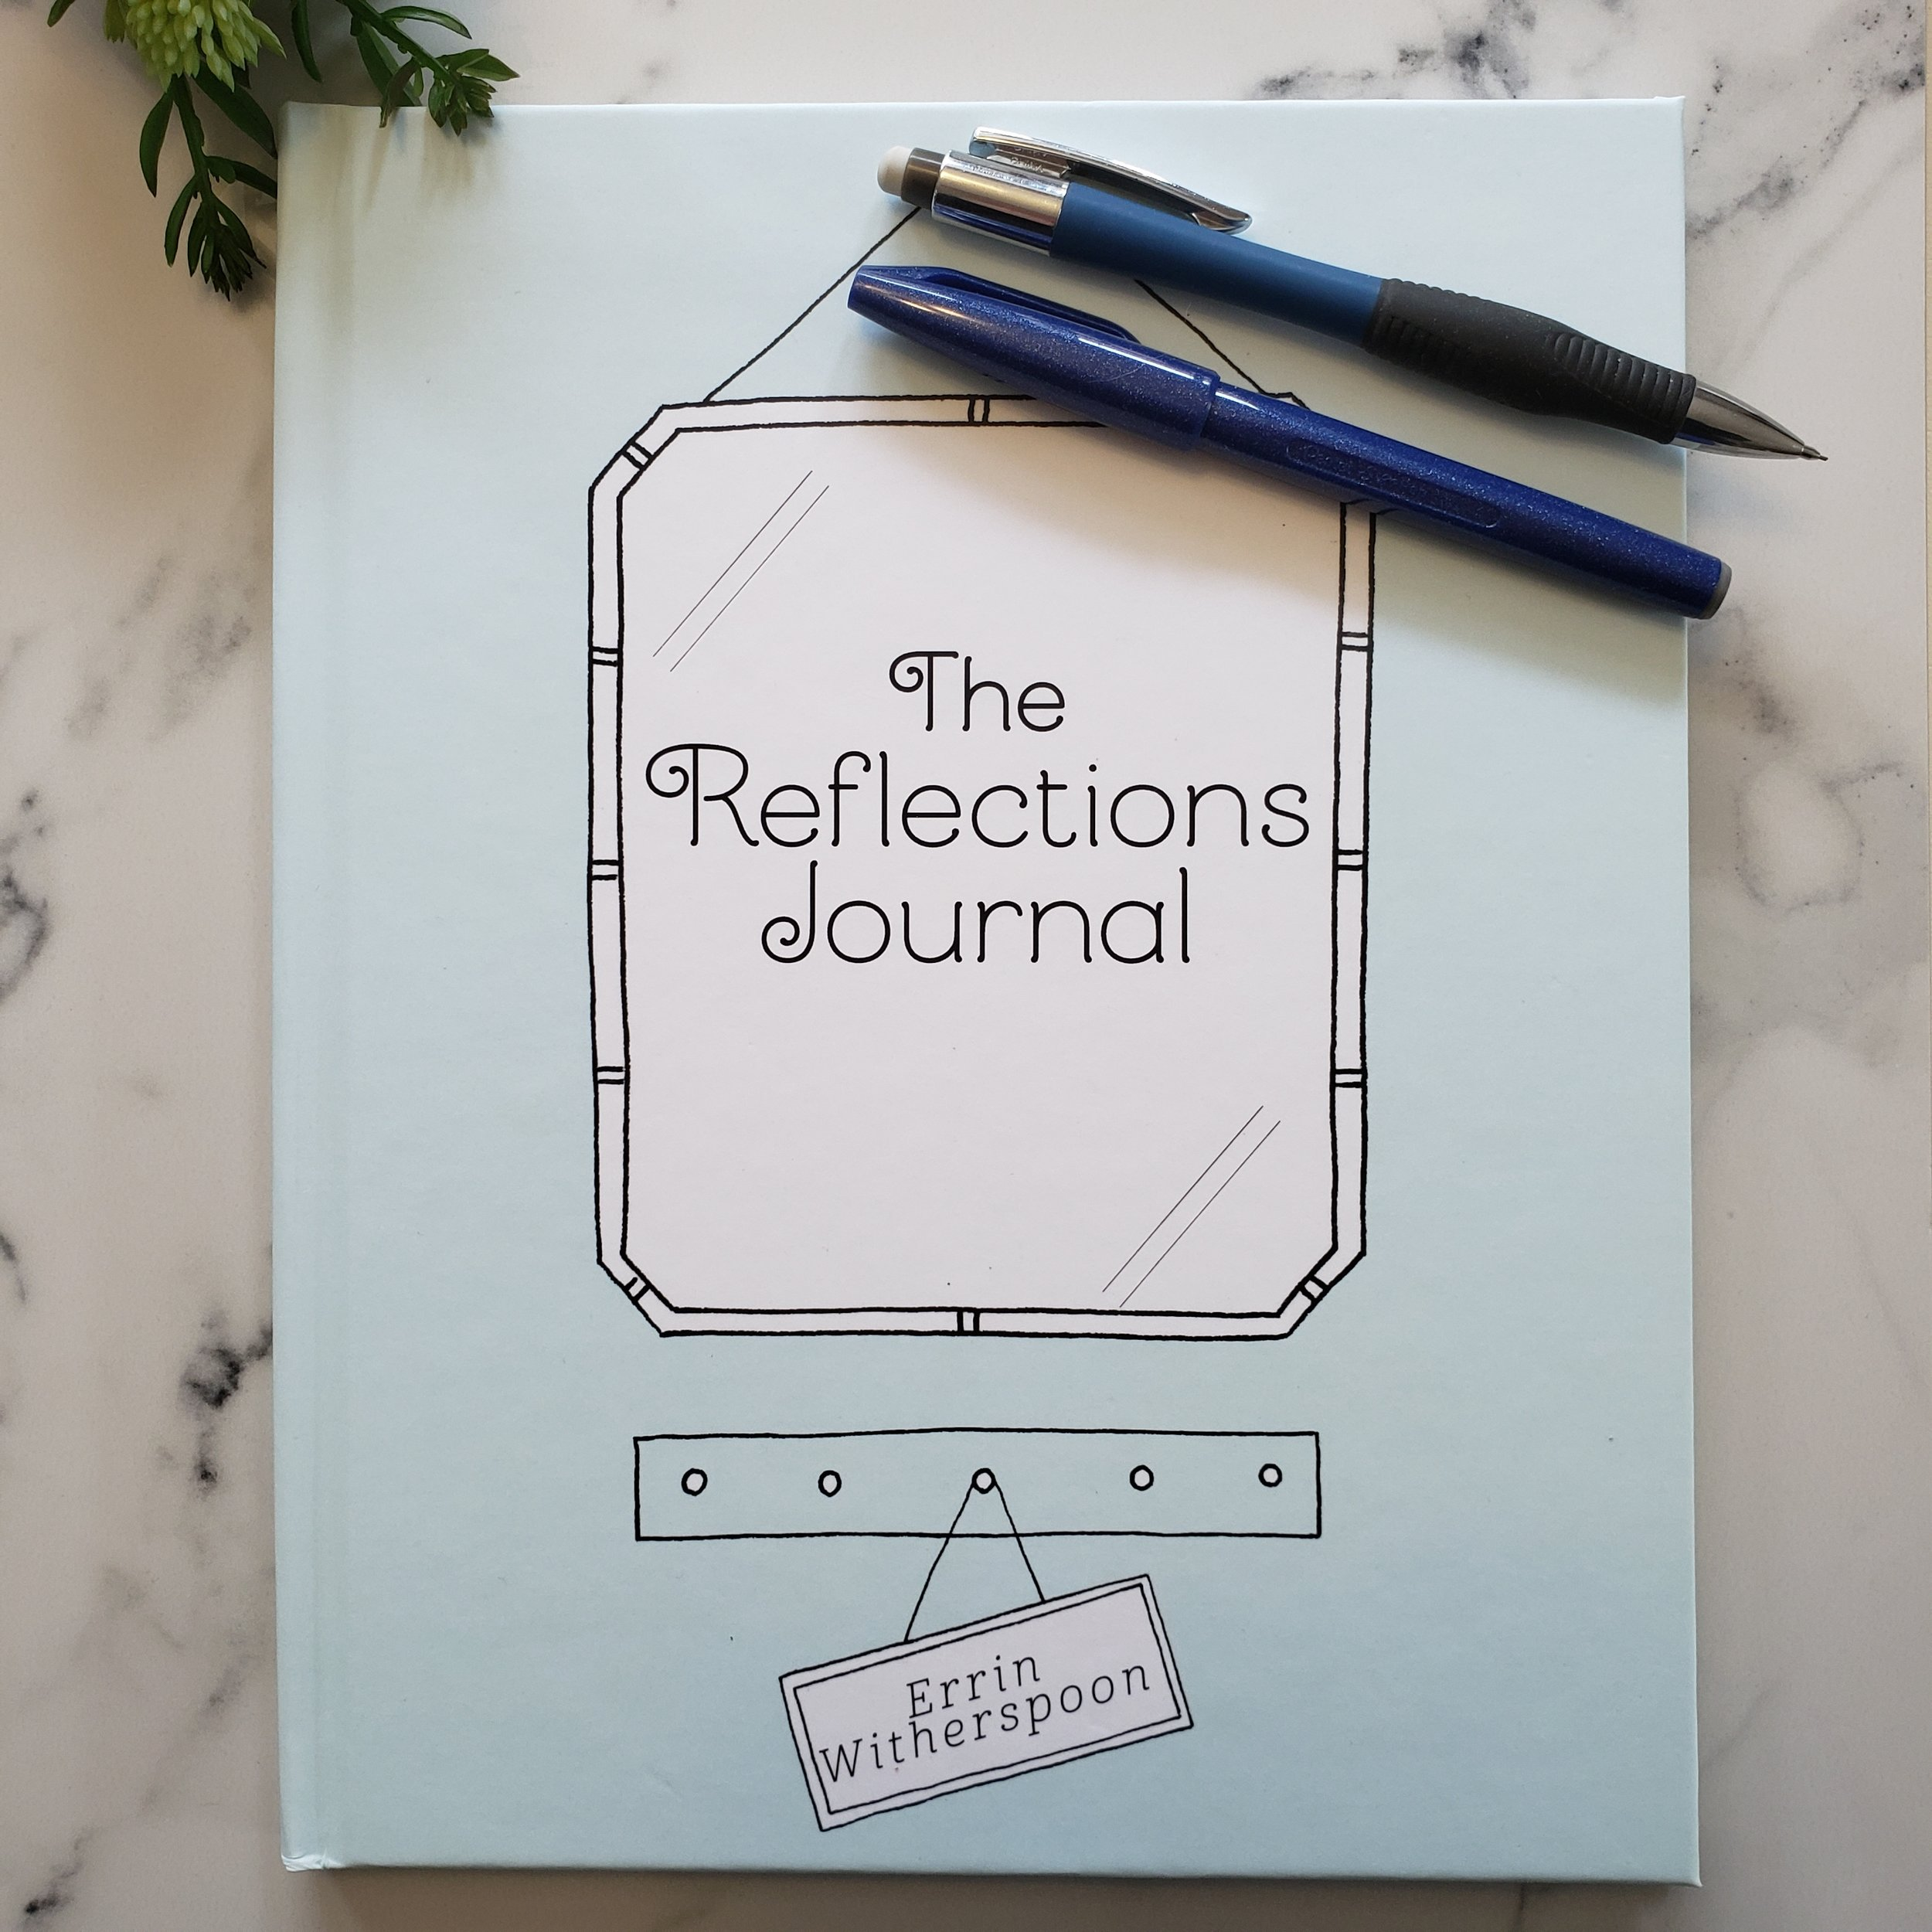 Who is the journal for? - • those recovering from eating disorders• those recovering from addiction• those recovering from PTSD• anyone developing a journaling habit